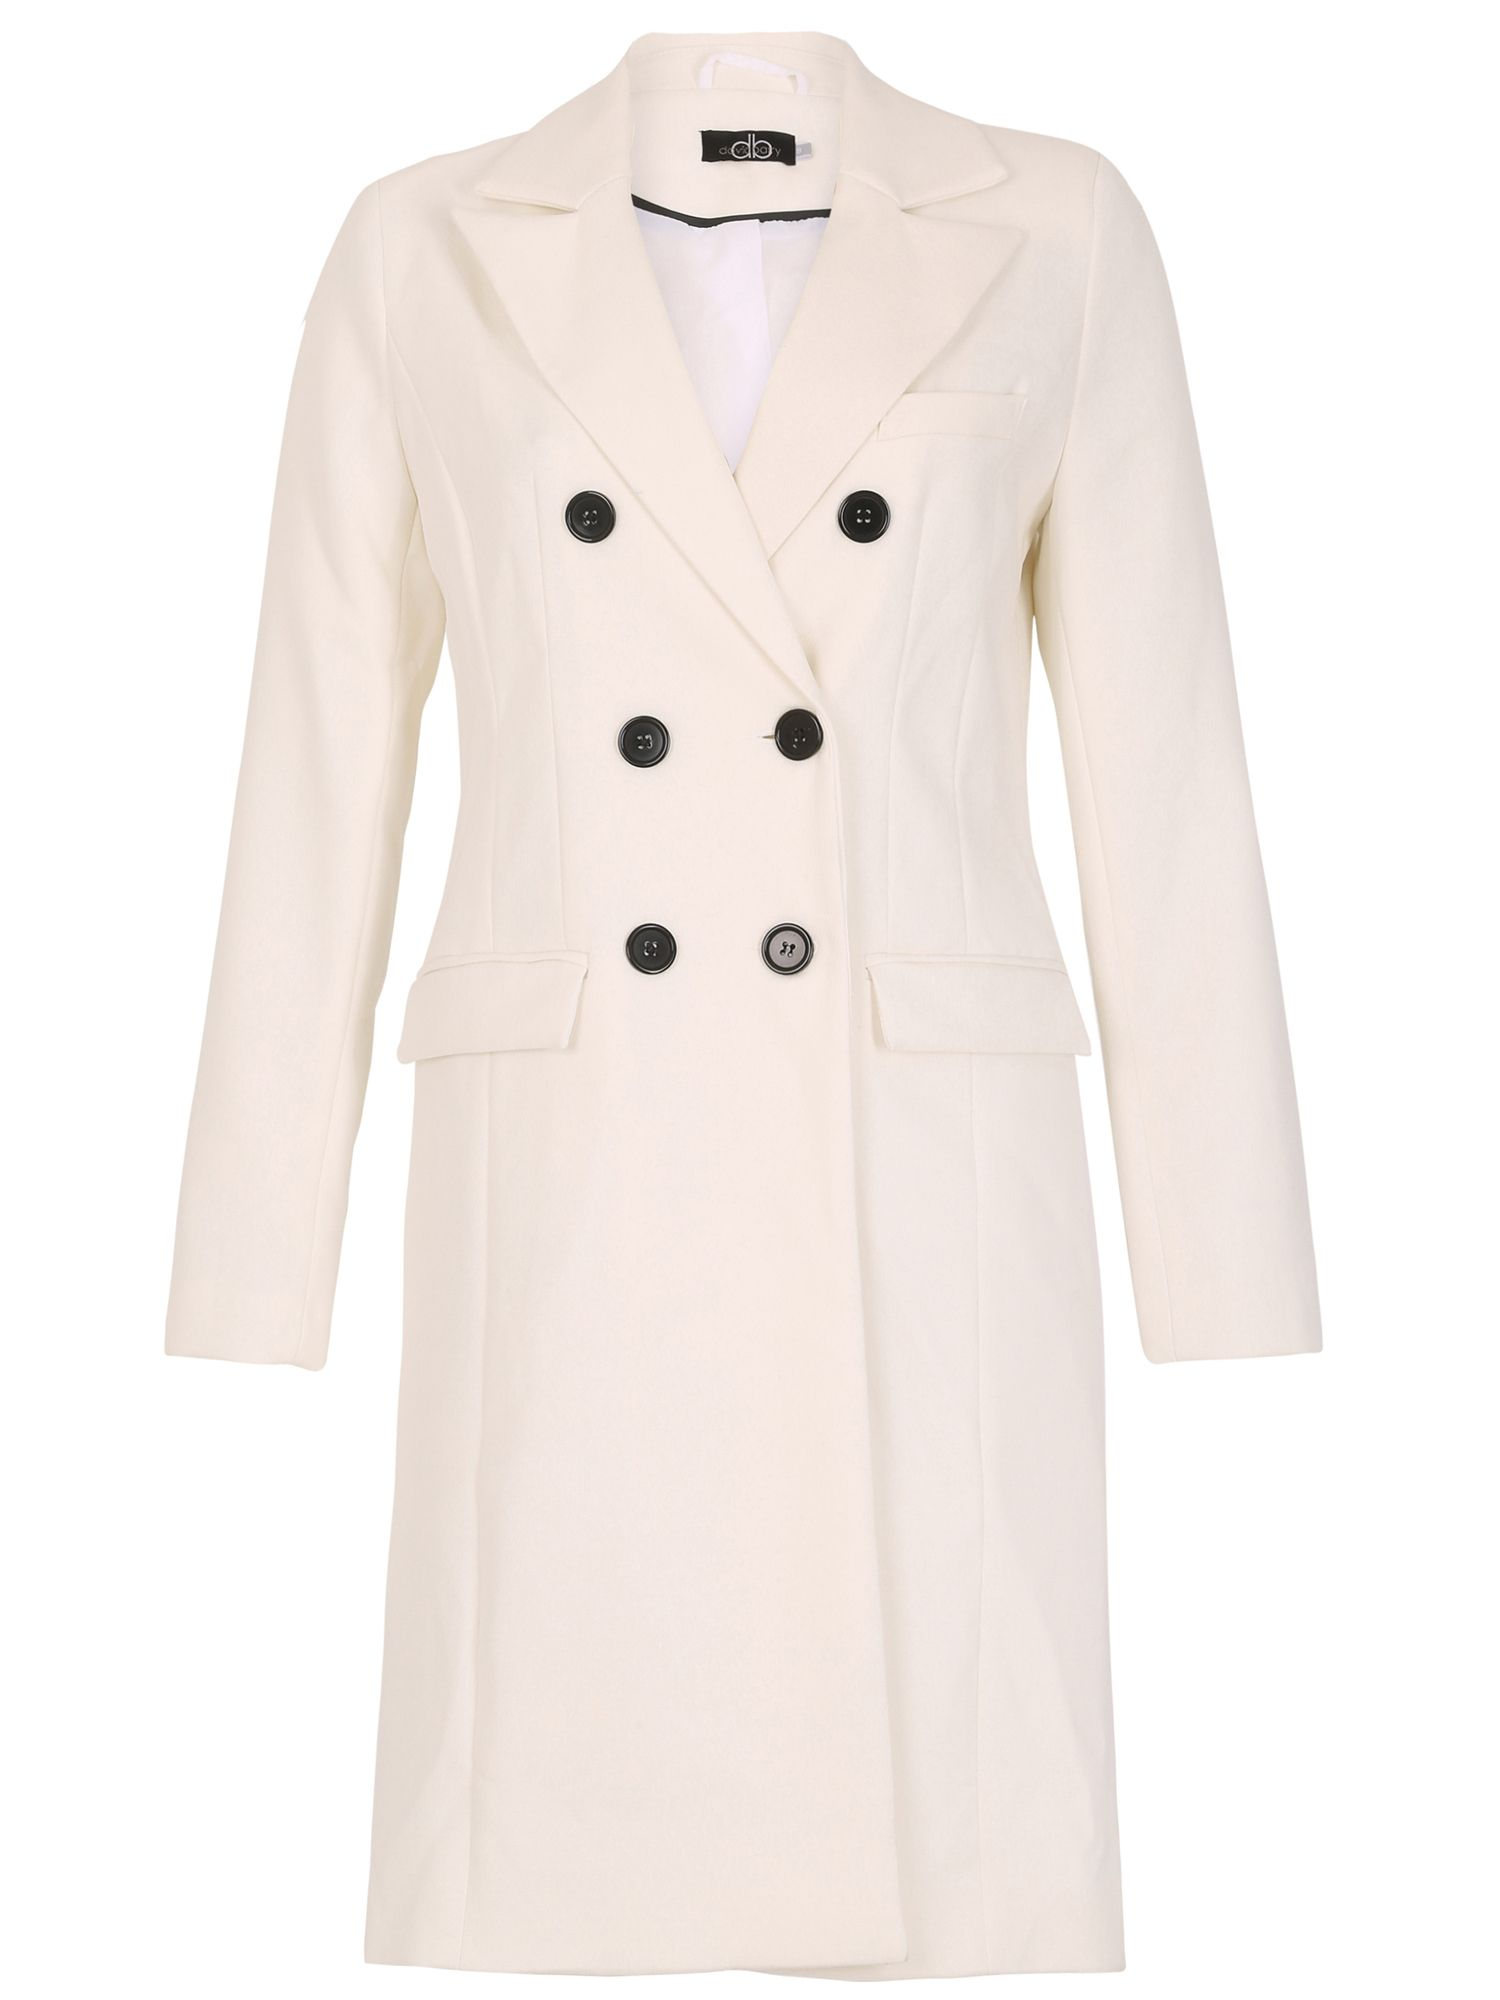 David Barry David Barry DB Lined Coat, White